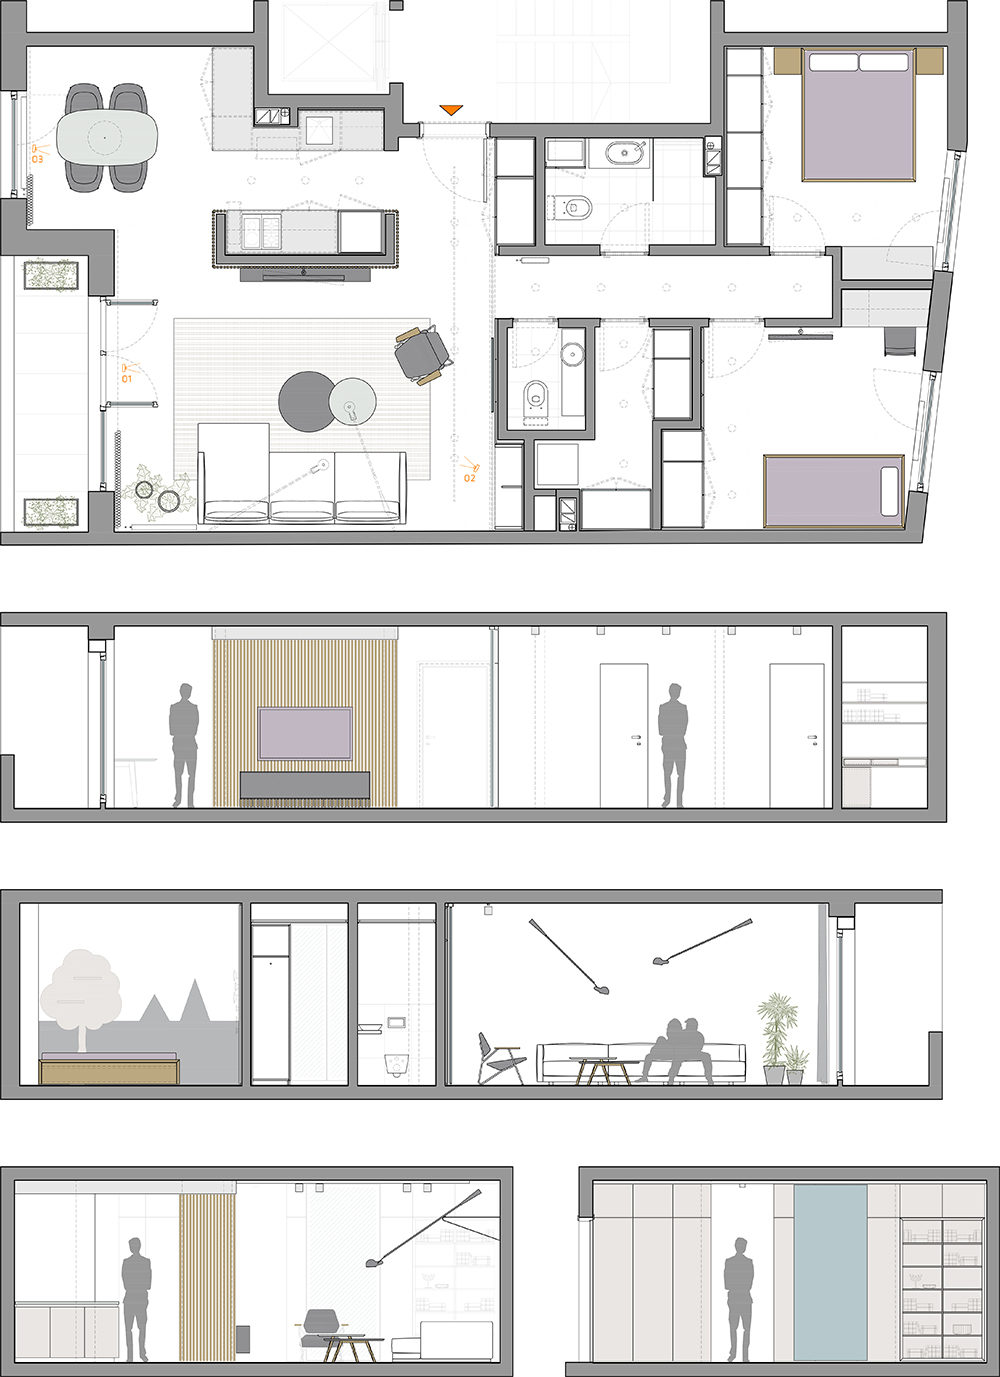 apartment_im_drawing